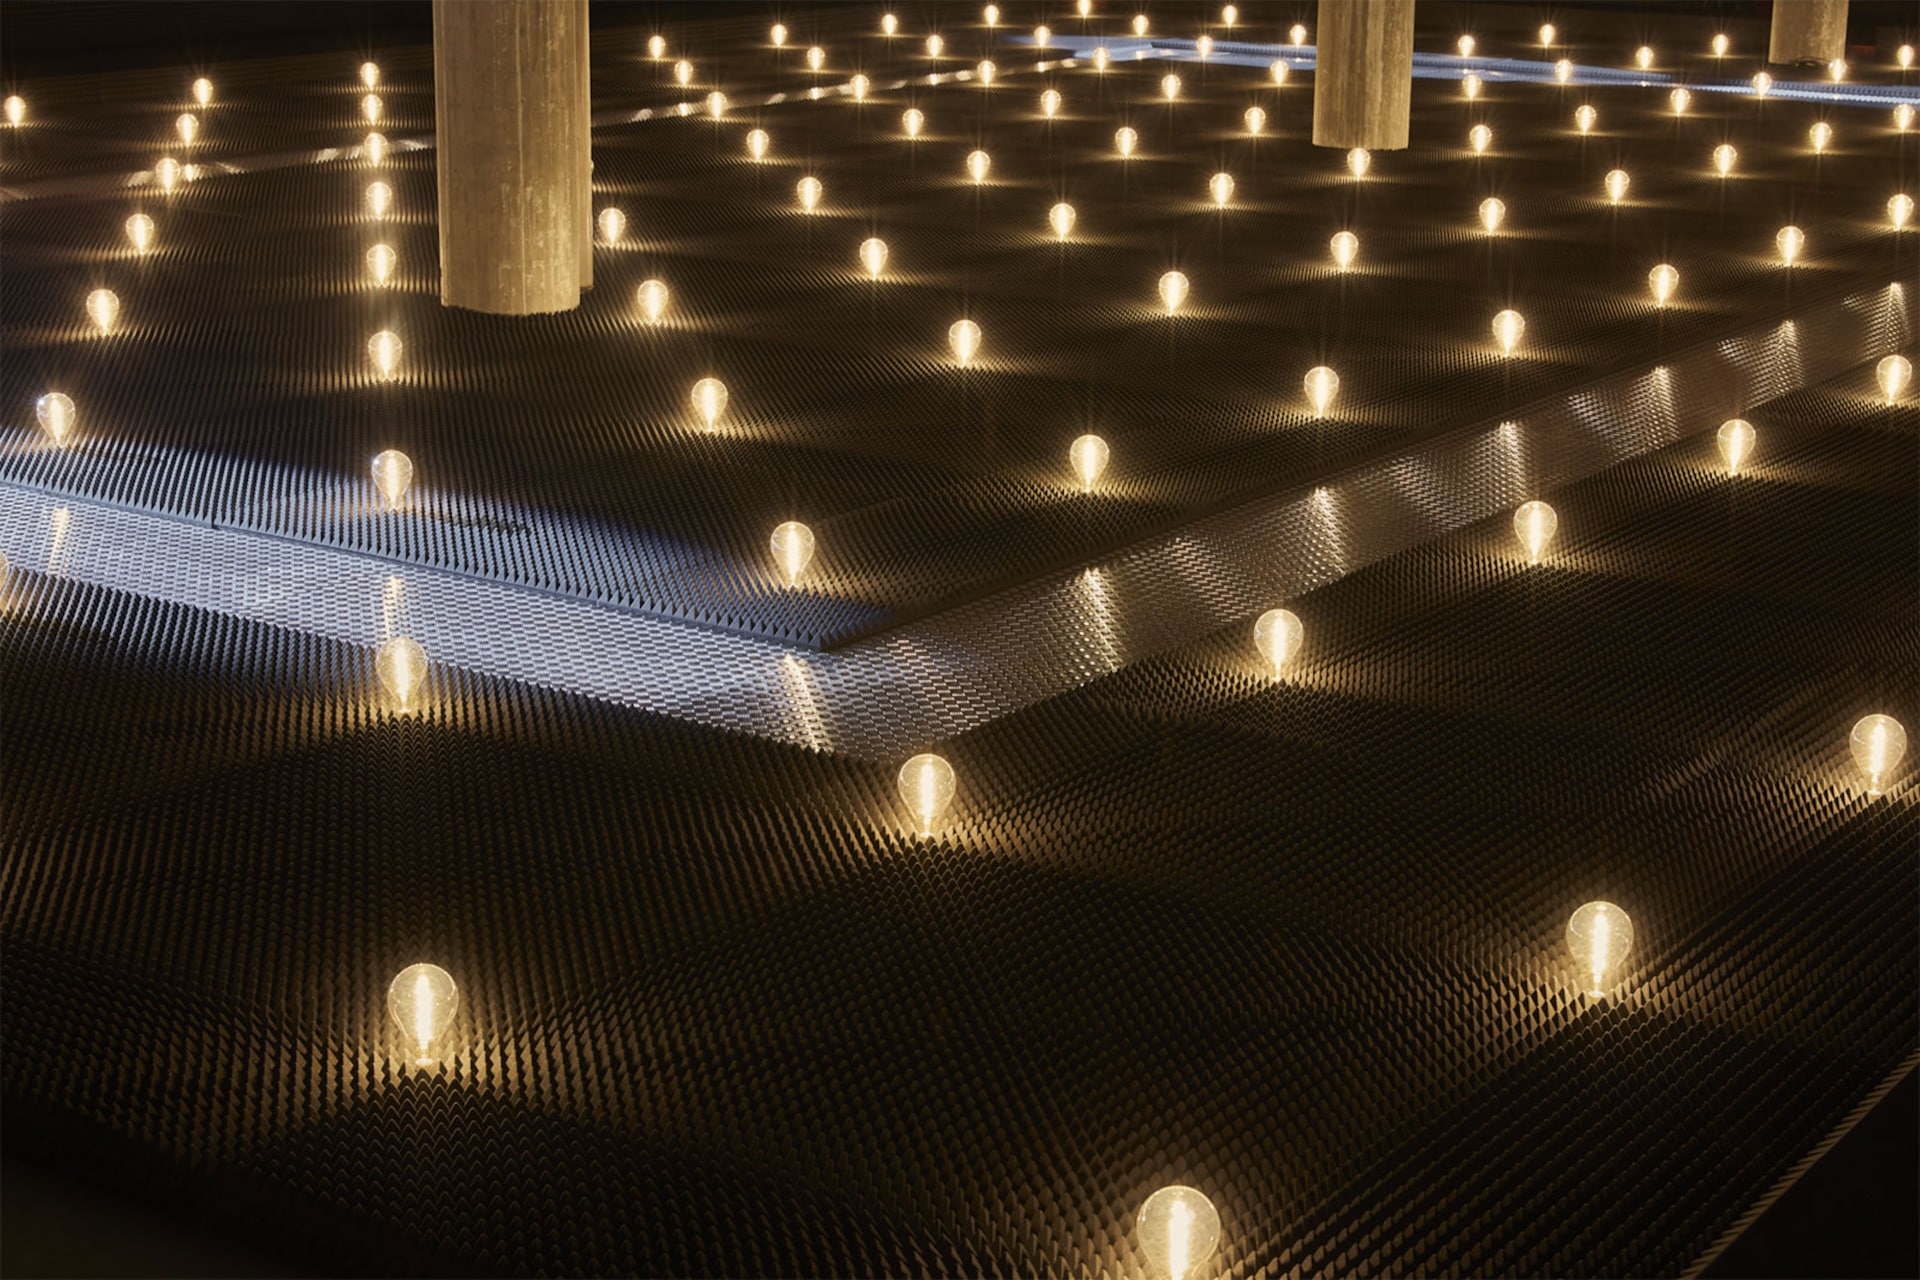 Prada Fall Winter 2019 Men's and Women's fashion show space detail 8 For the 2019 Fall/Winter Prada shows – both Men's and Women's, AMO has created a theatrical field of lights in the grand hall of the Deposito, the multifunctional venue for performances that is part of the Fondazione Prada complex.